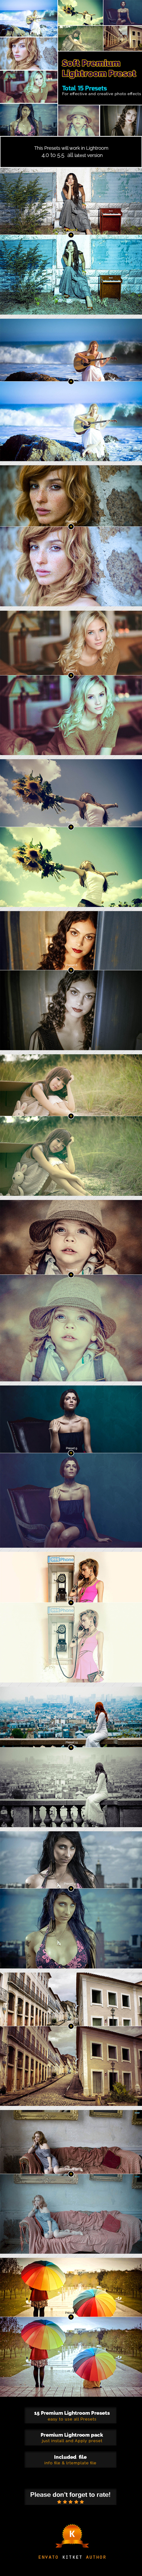 Soft Premium Lightroom Preset - Portrait Lightroom Presets